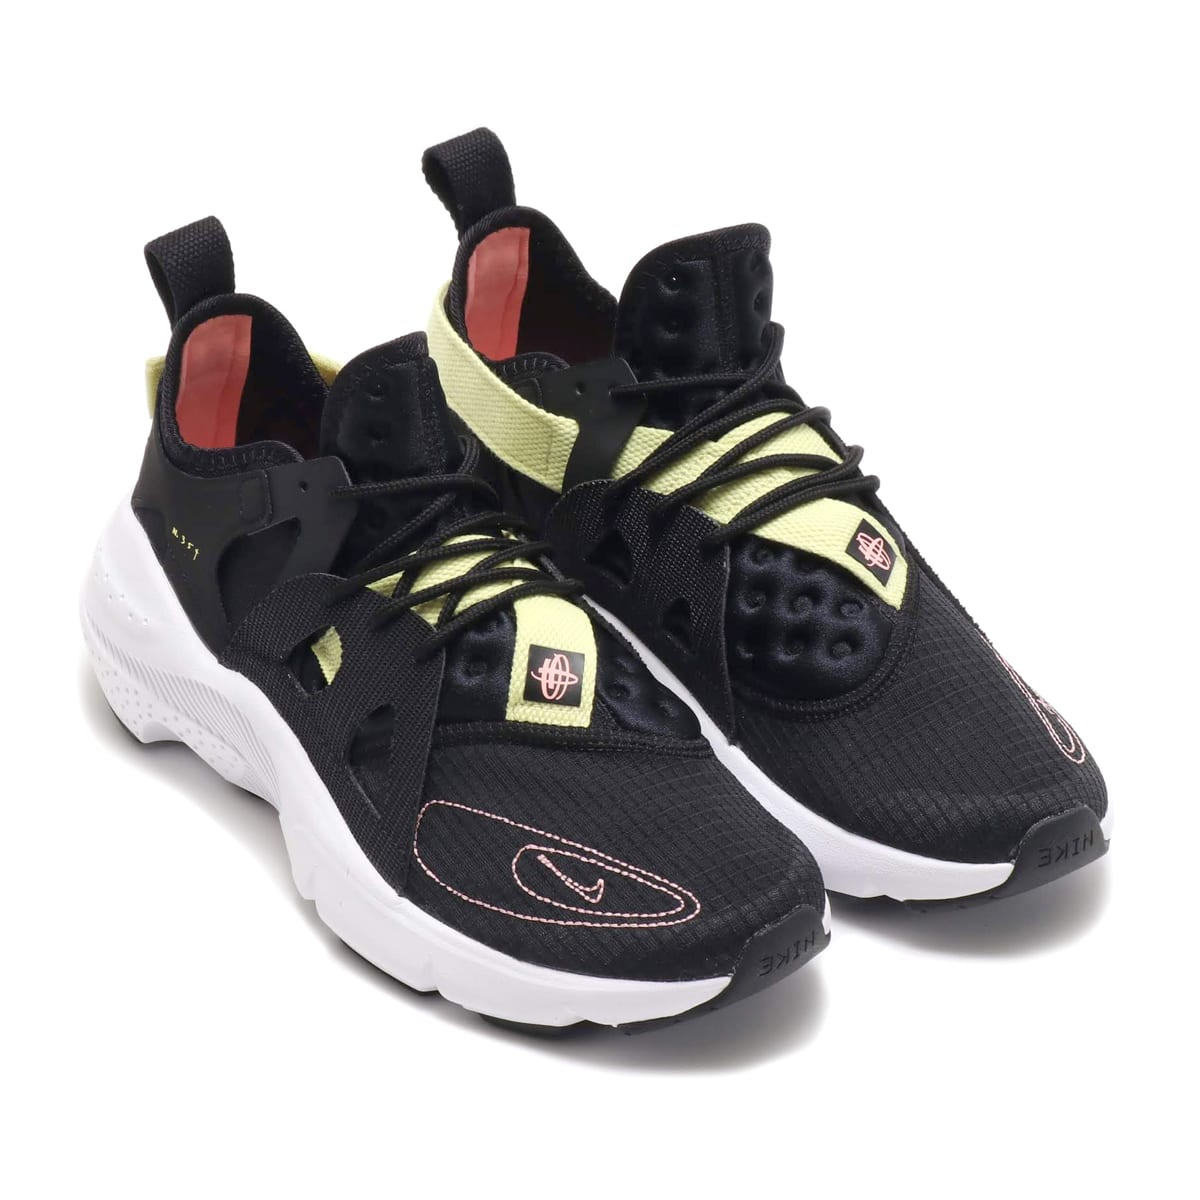 NIKE HUARACHE-TYPE BLACK/PINK TINT-BLACK-ZINNIA 19FA-S_photo_large